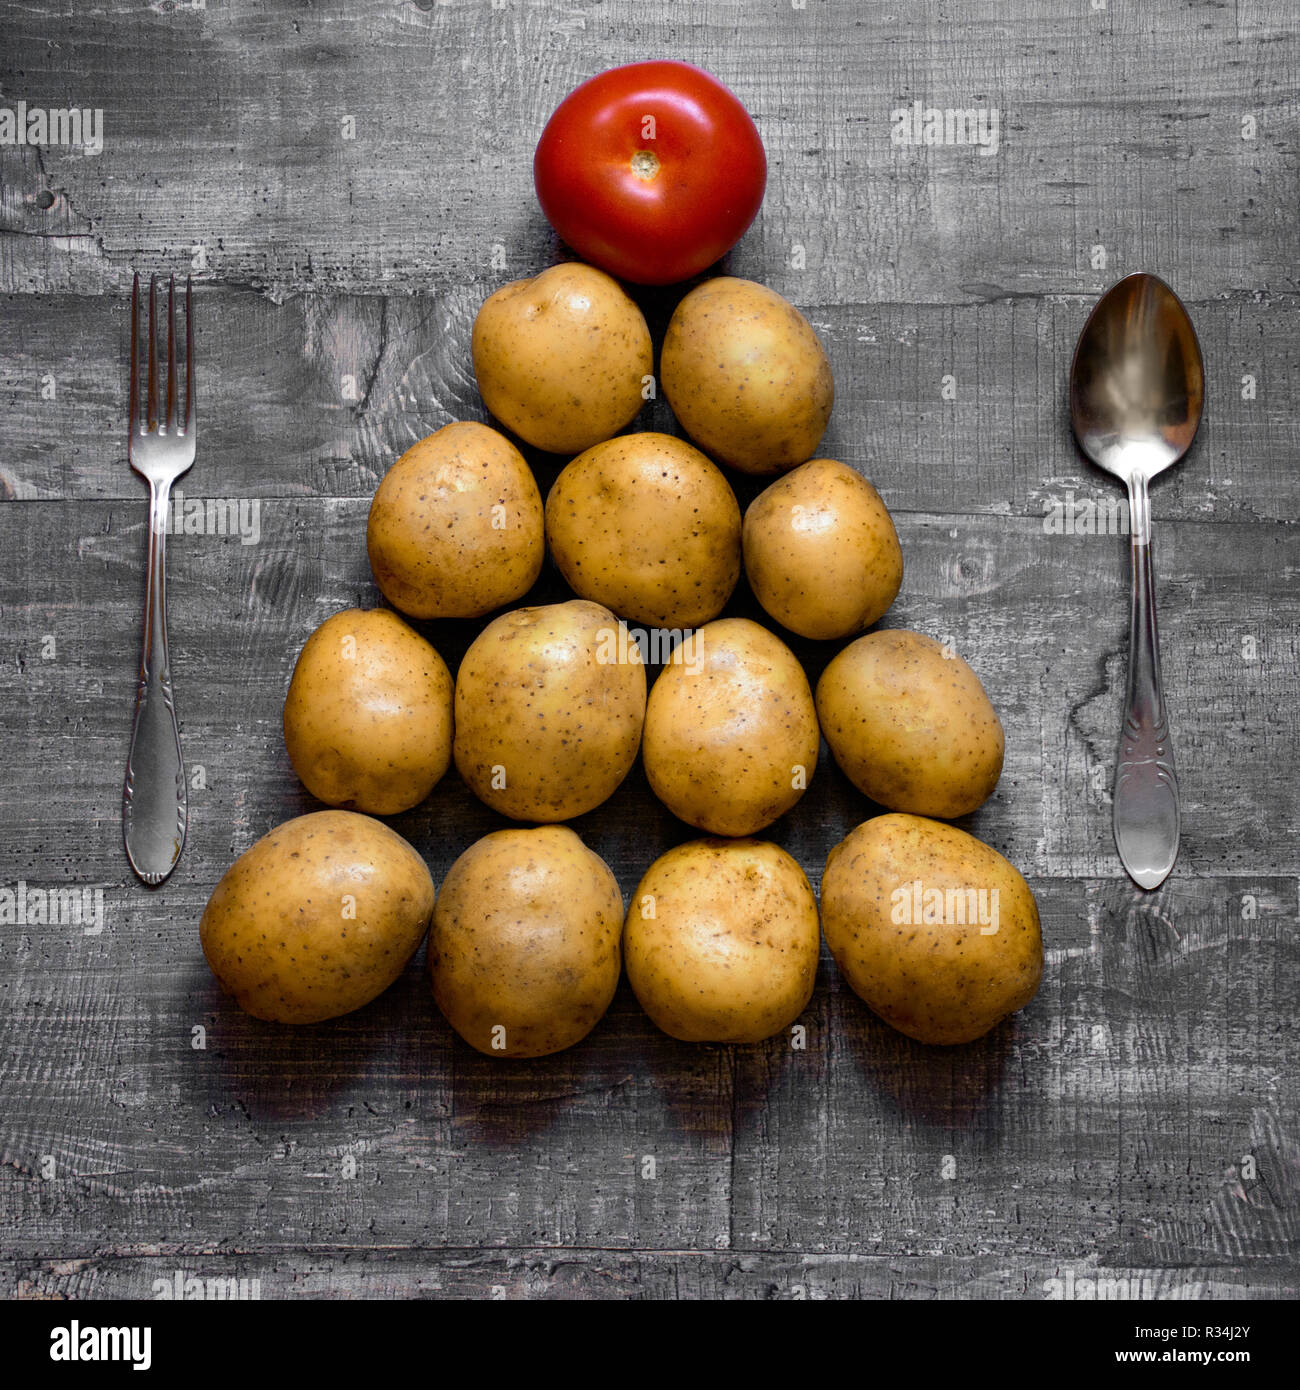 Concept potatoes and a tomato on an old wooden table or wooden surface is laid out in the shape of a Christmas tree. Flat Layout top view - Stock Image